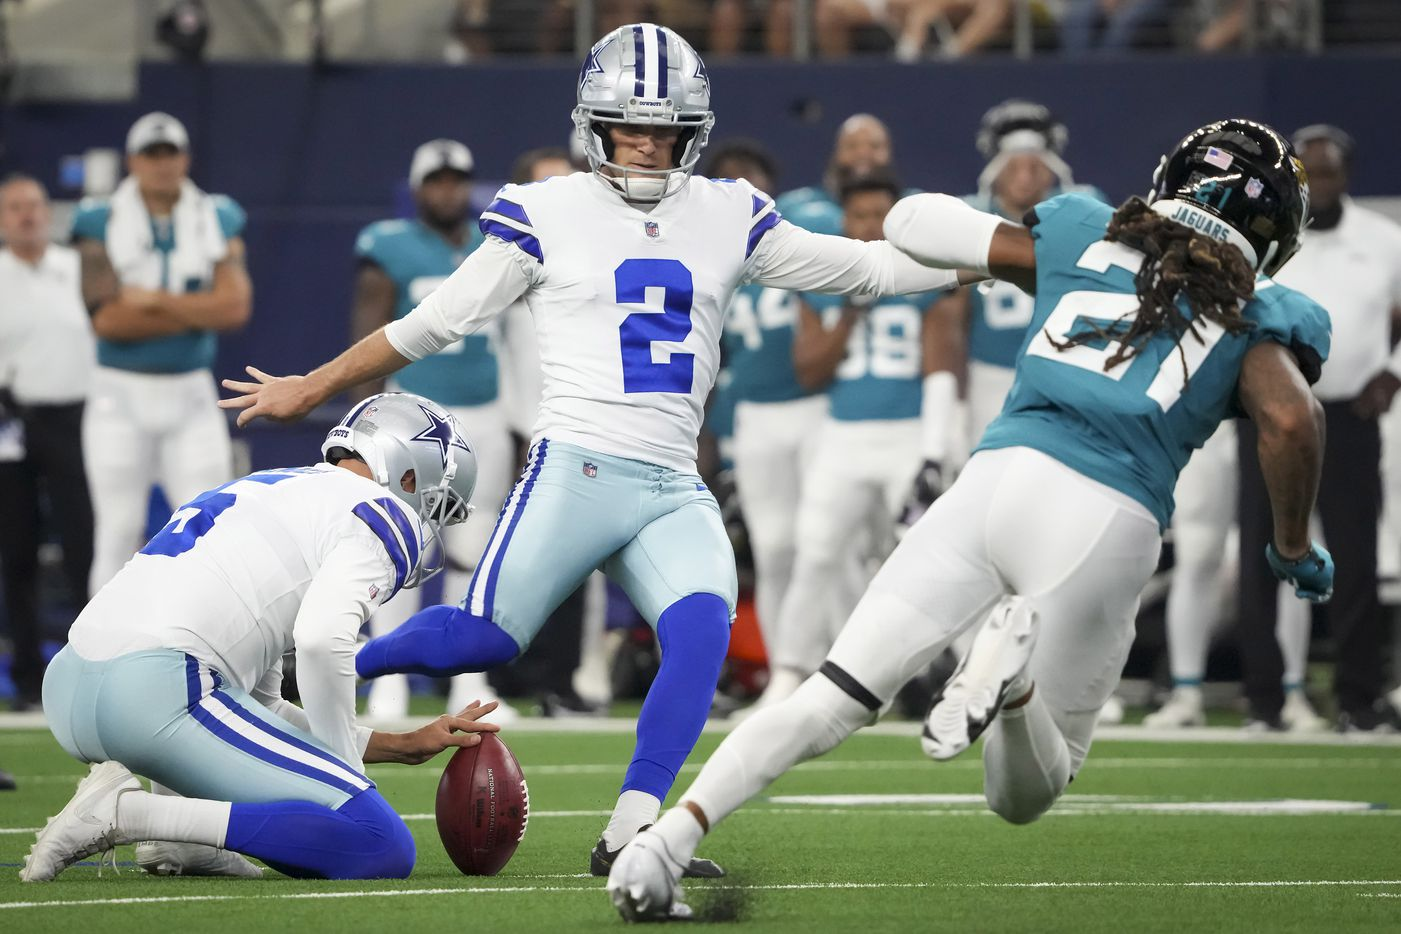 Dallas Cowboys kicker Greg Zuerlein (2) attempts a 56-yard field goal during the first half of a preseason NFL football game against the Jacksonville Jaguars at AT&T Stadium on Sunday, Aug. 29, 2021, in Arlington. (Smiley N. Pool/The Dallas Morning News)